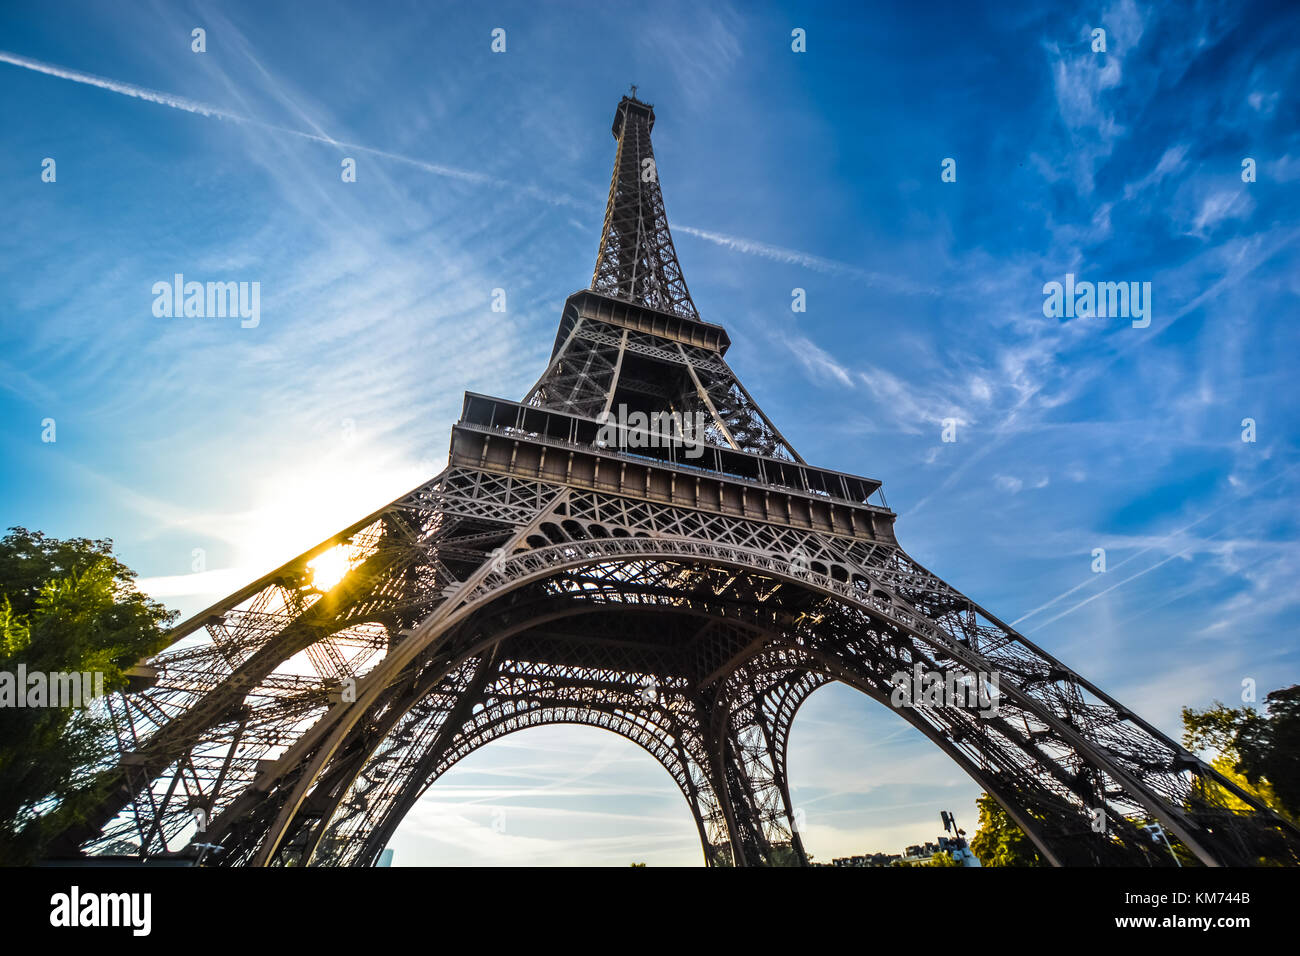 A view of the Eiffel Tower with a wide angle lens looking up from the base on a sunny afternoon - Stock Image